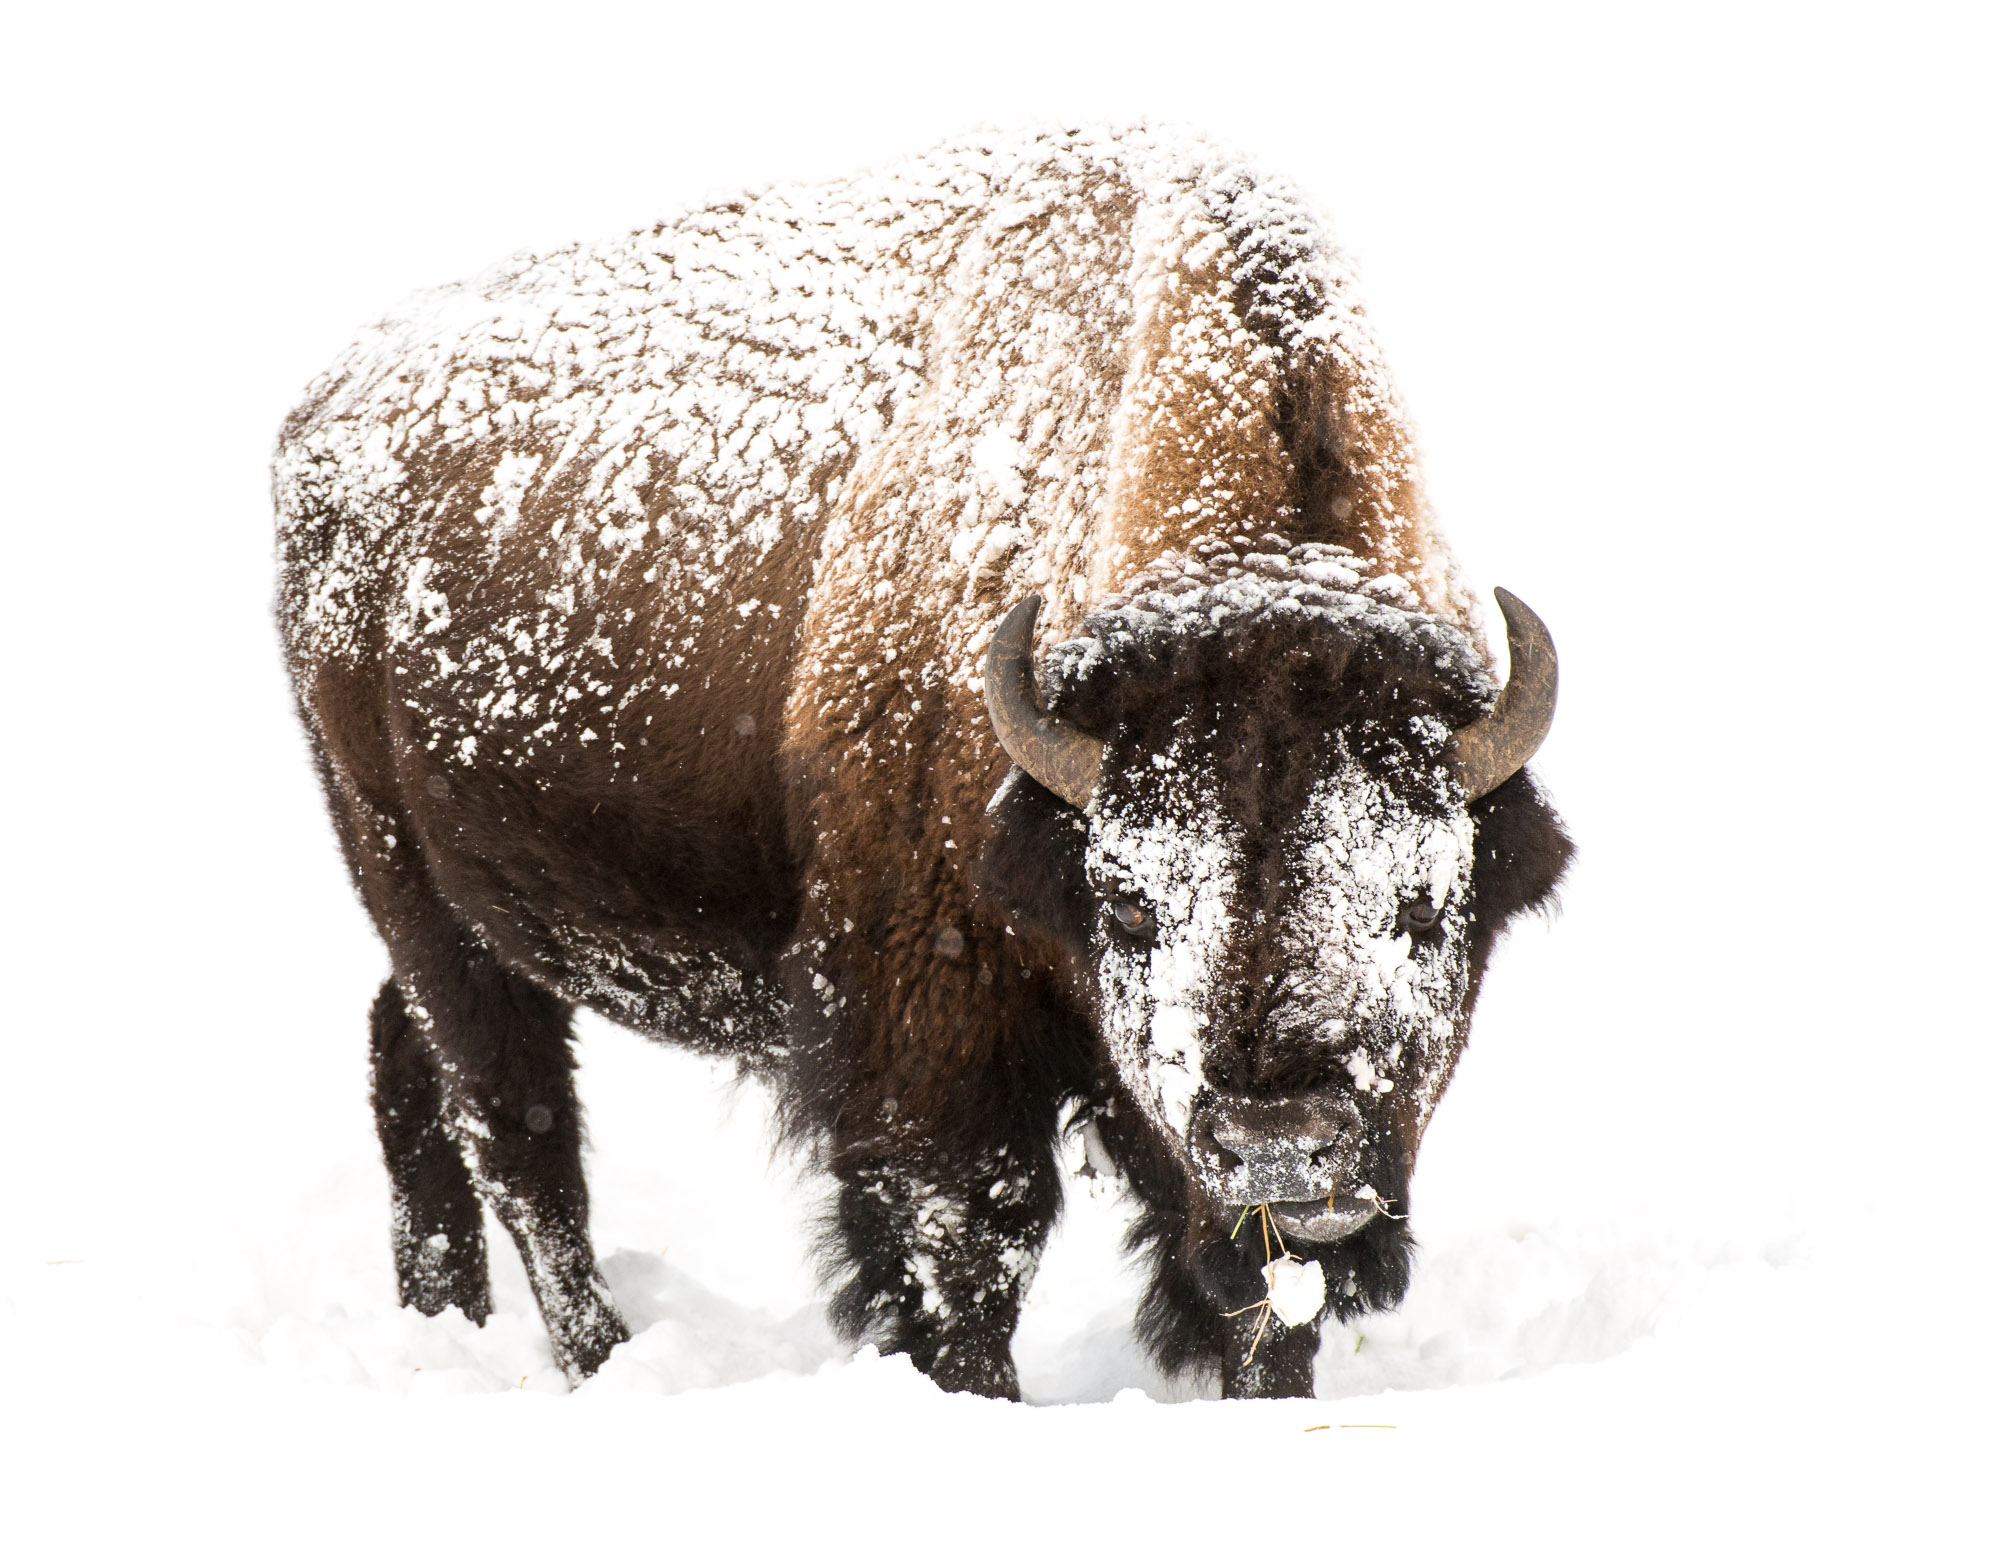 Bison feeding in snow - Yellowstone National Park, Wyoming